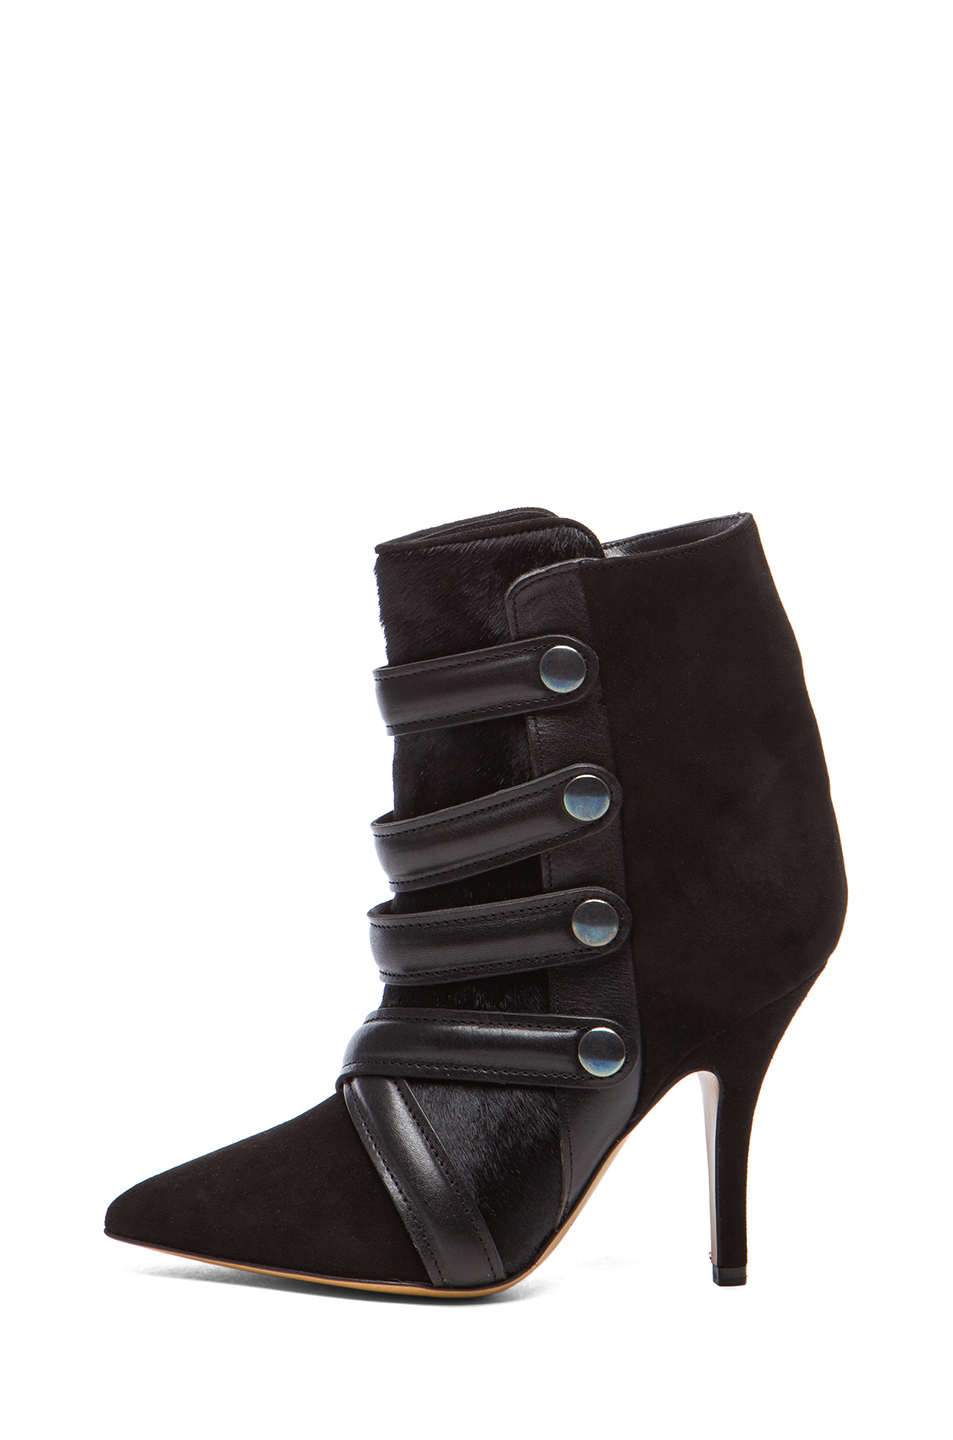 Isabel Marant|Tacy Pony Booties in Black